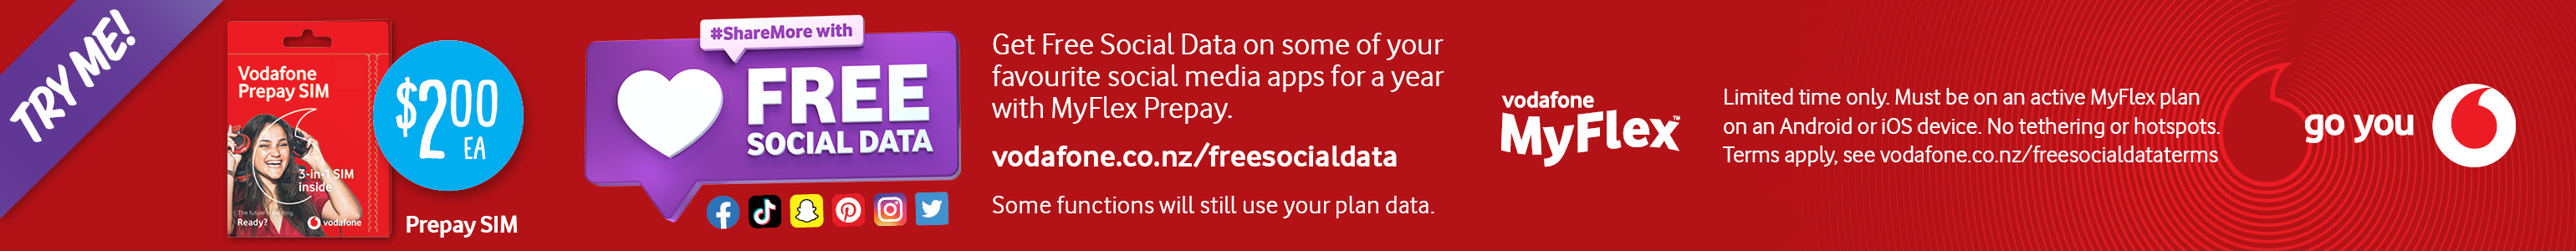 Latest deals from Vodafone